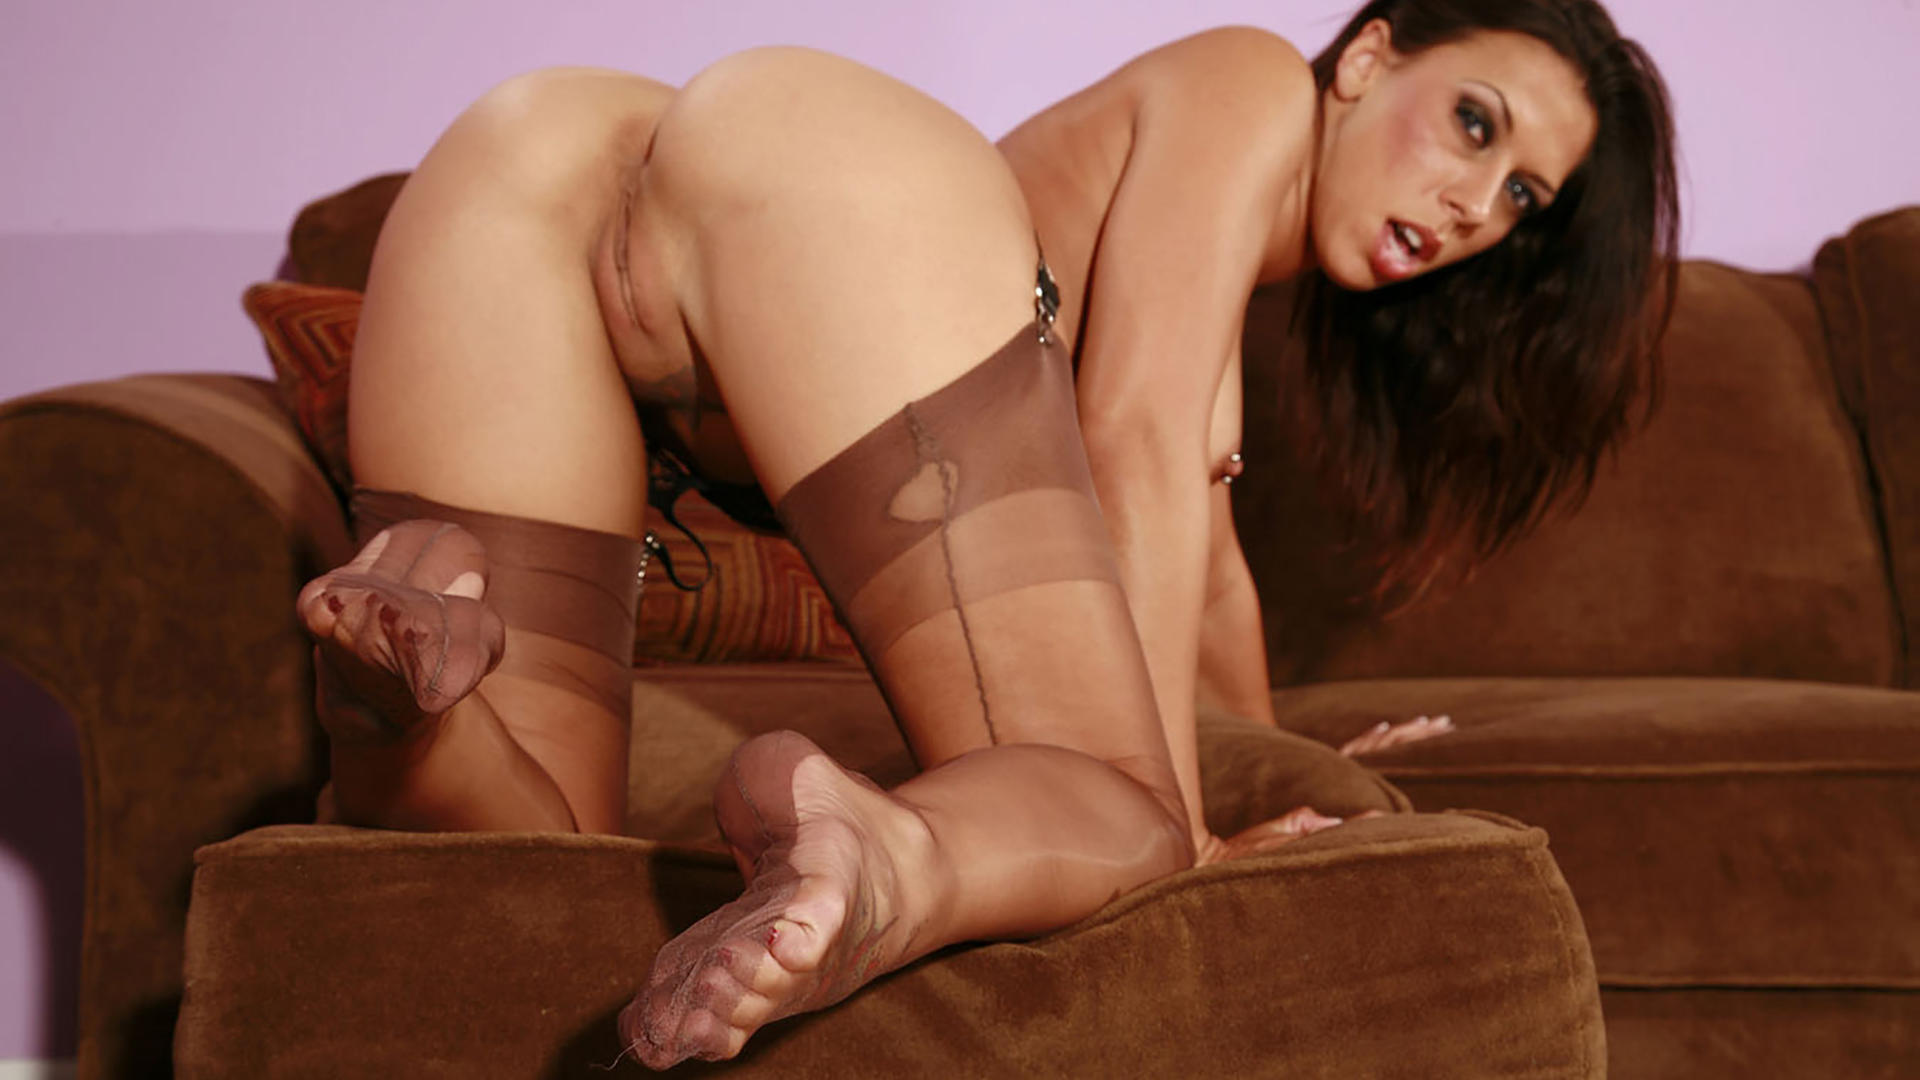 Share your Rachel starr stockings all clear